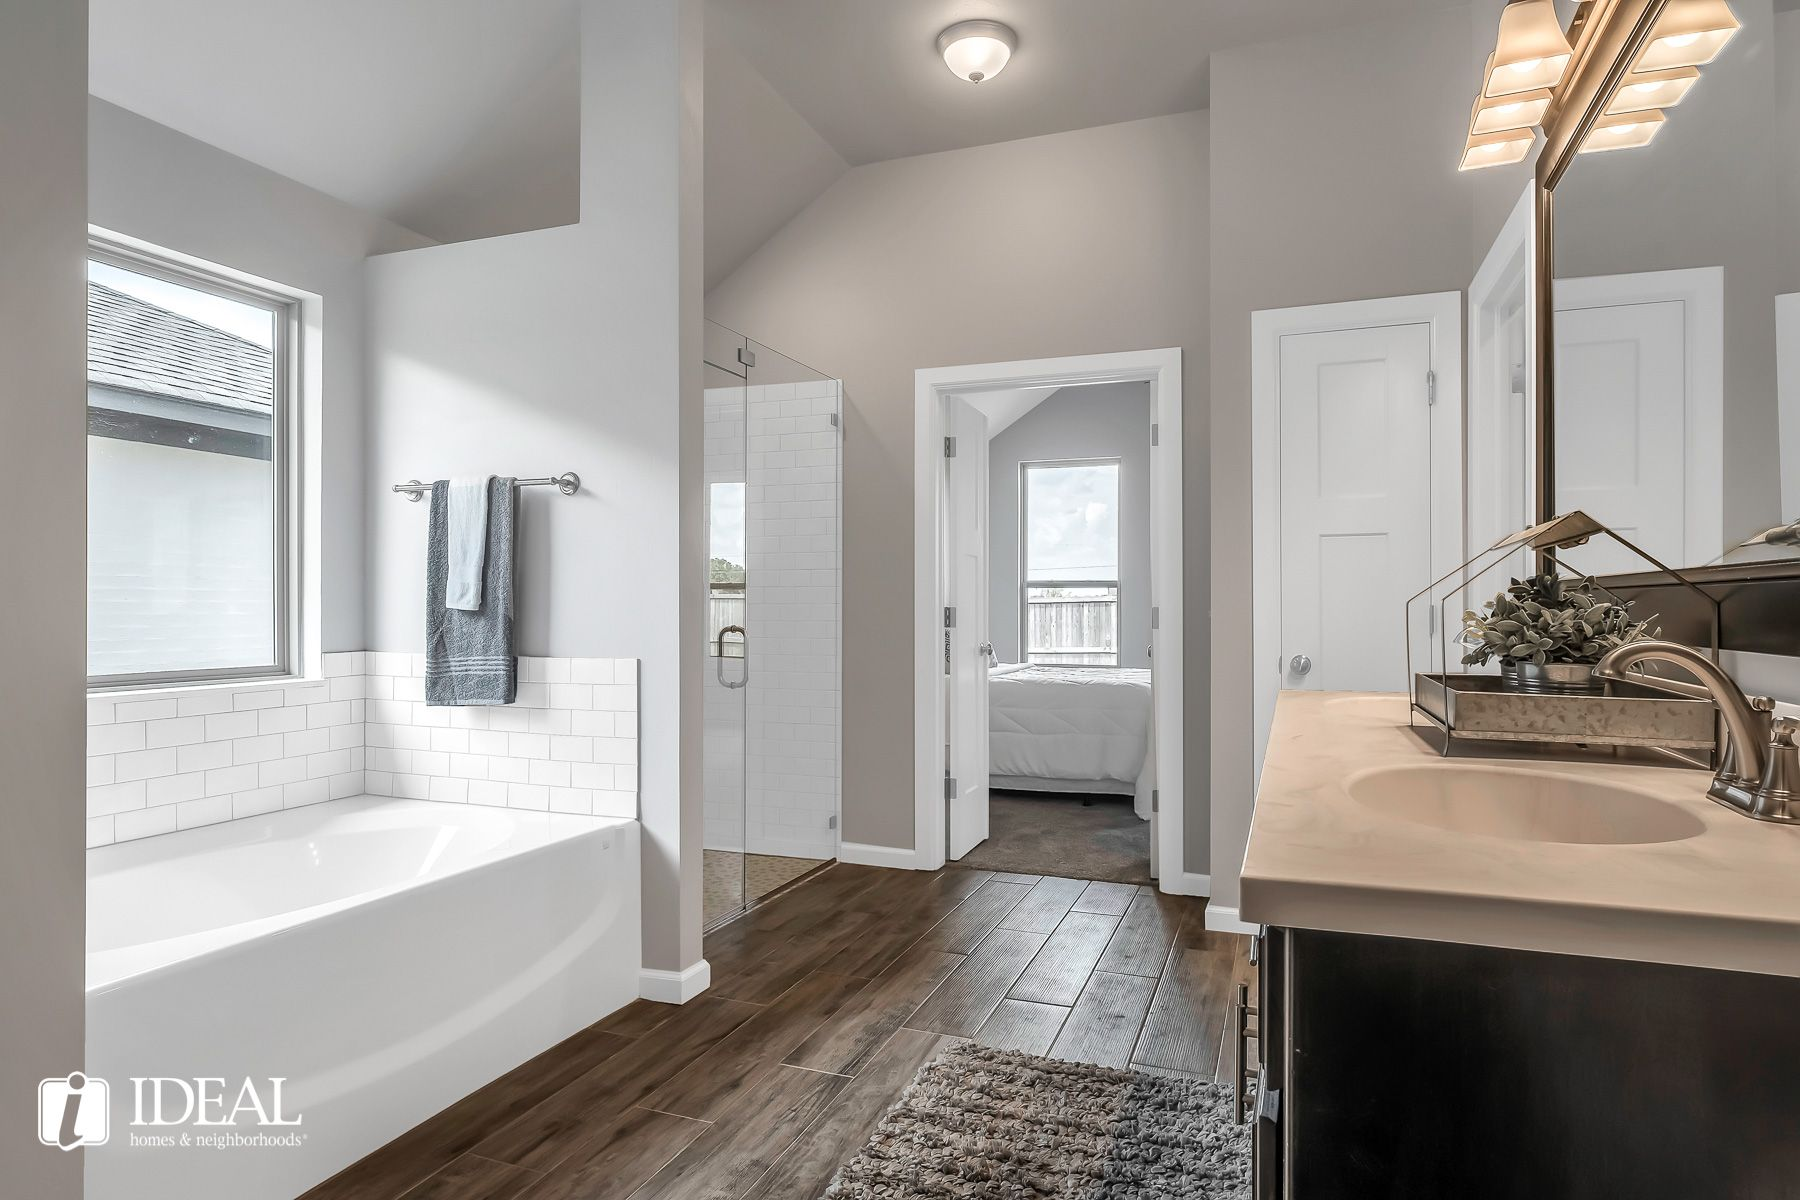 Bathroom featured in the Orwell Modern By Ideal Homes in Oklahoma City, OK